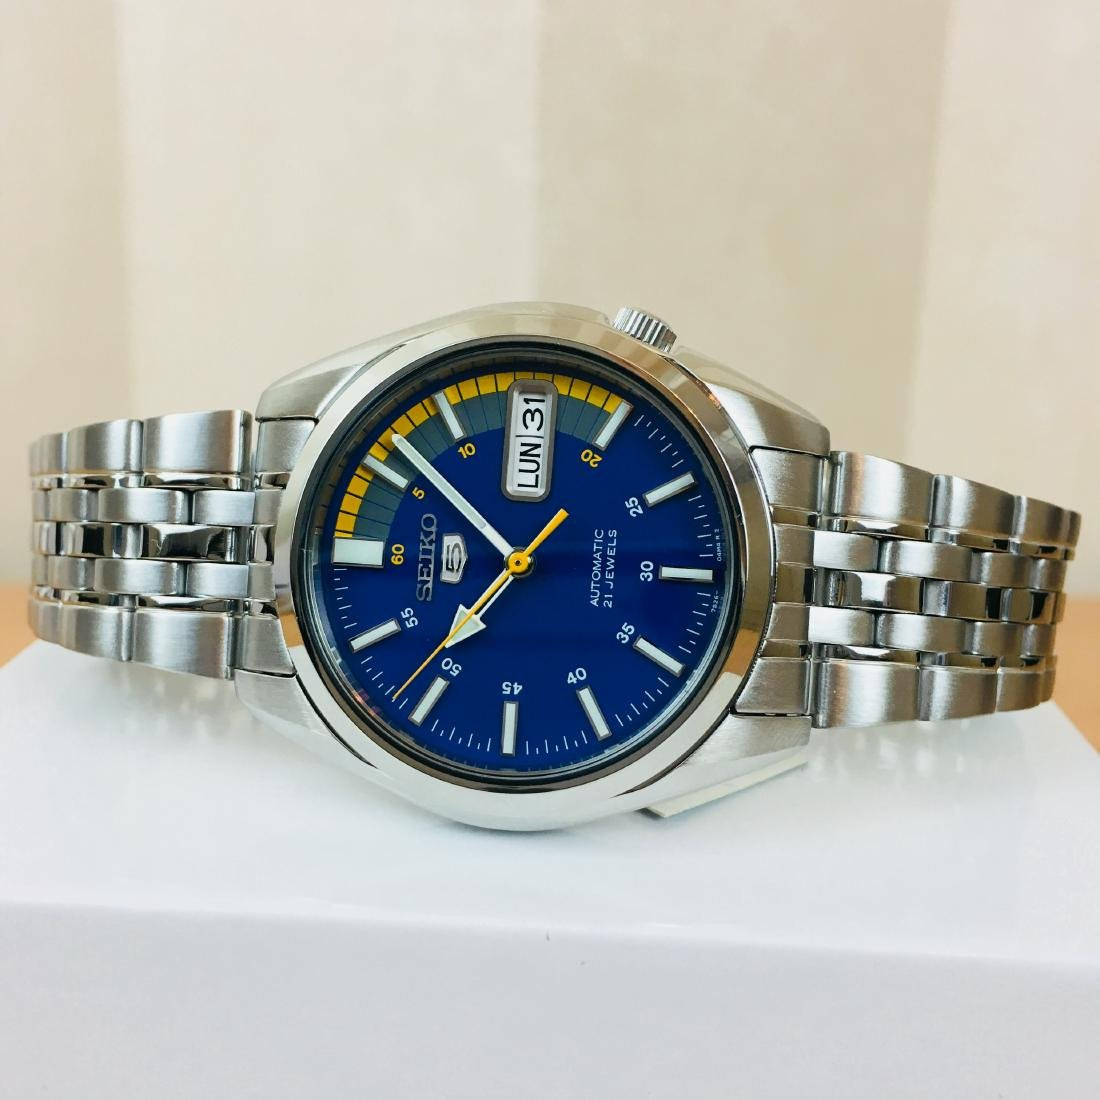 SEIKO 5 Men's Automatic Watch Brand New with Box